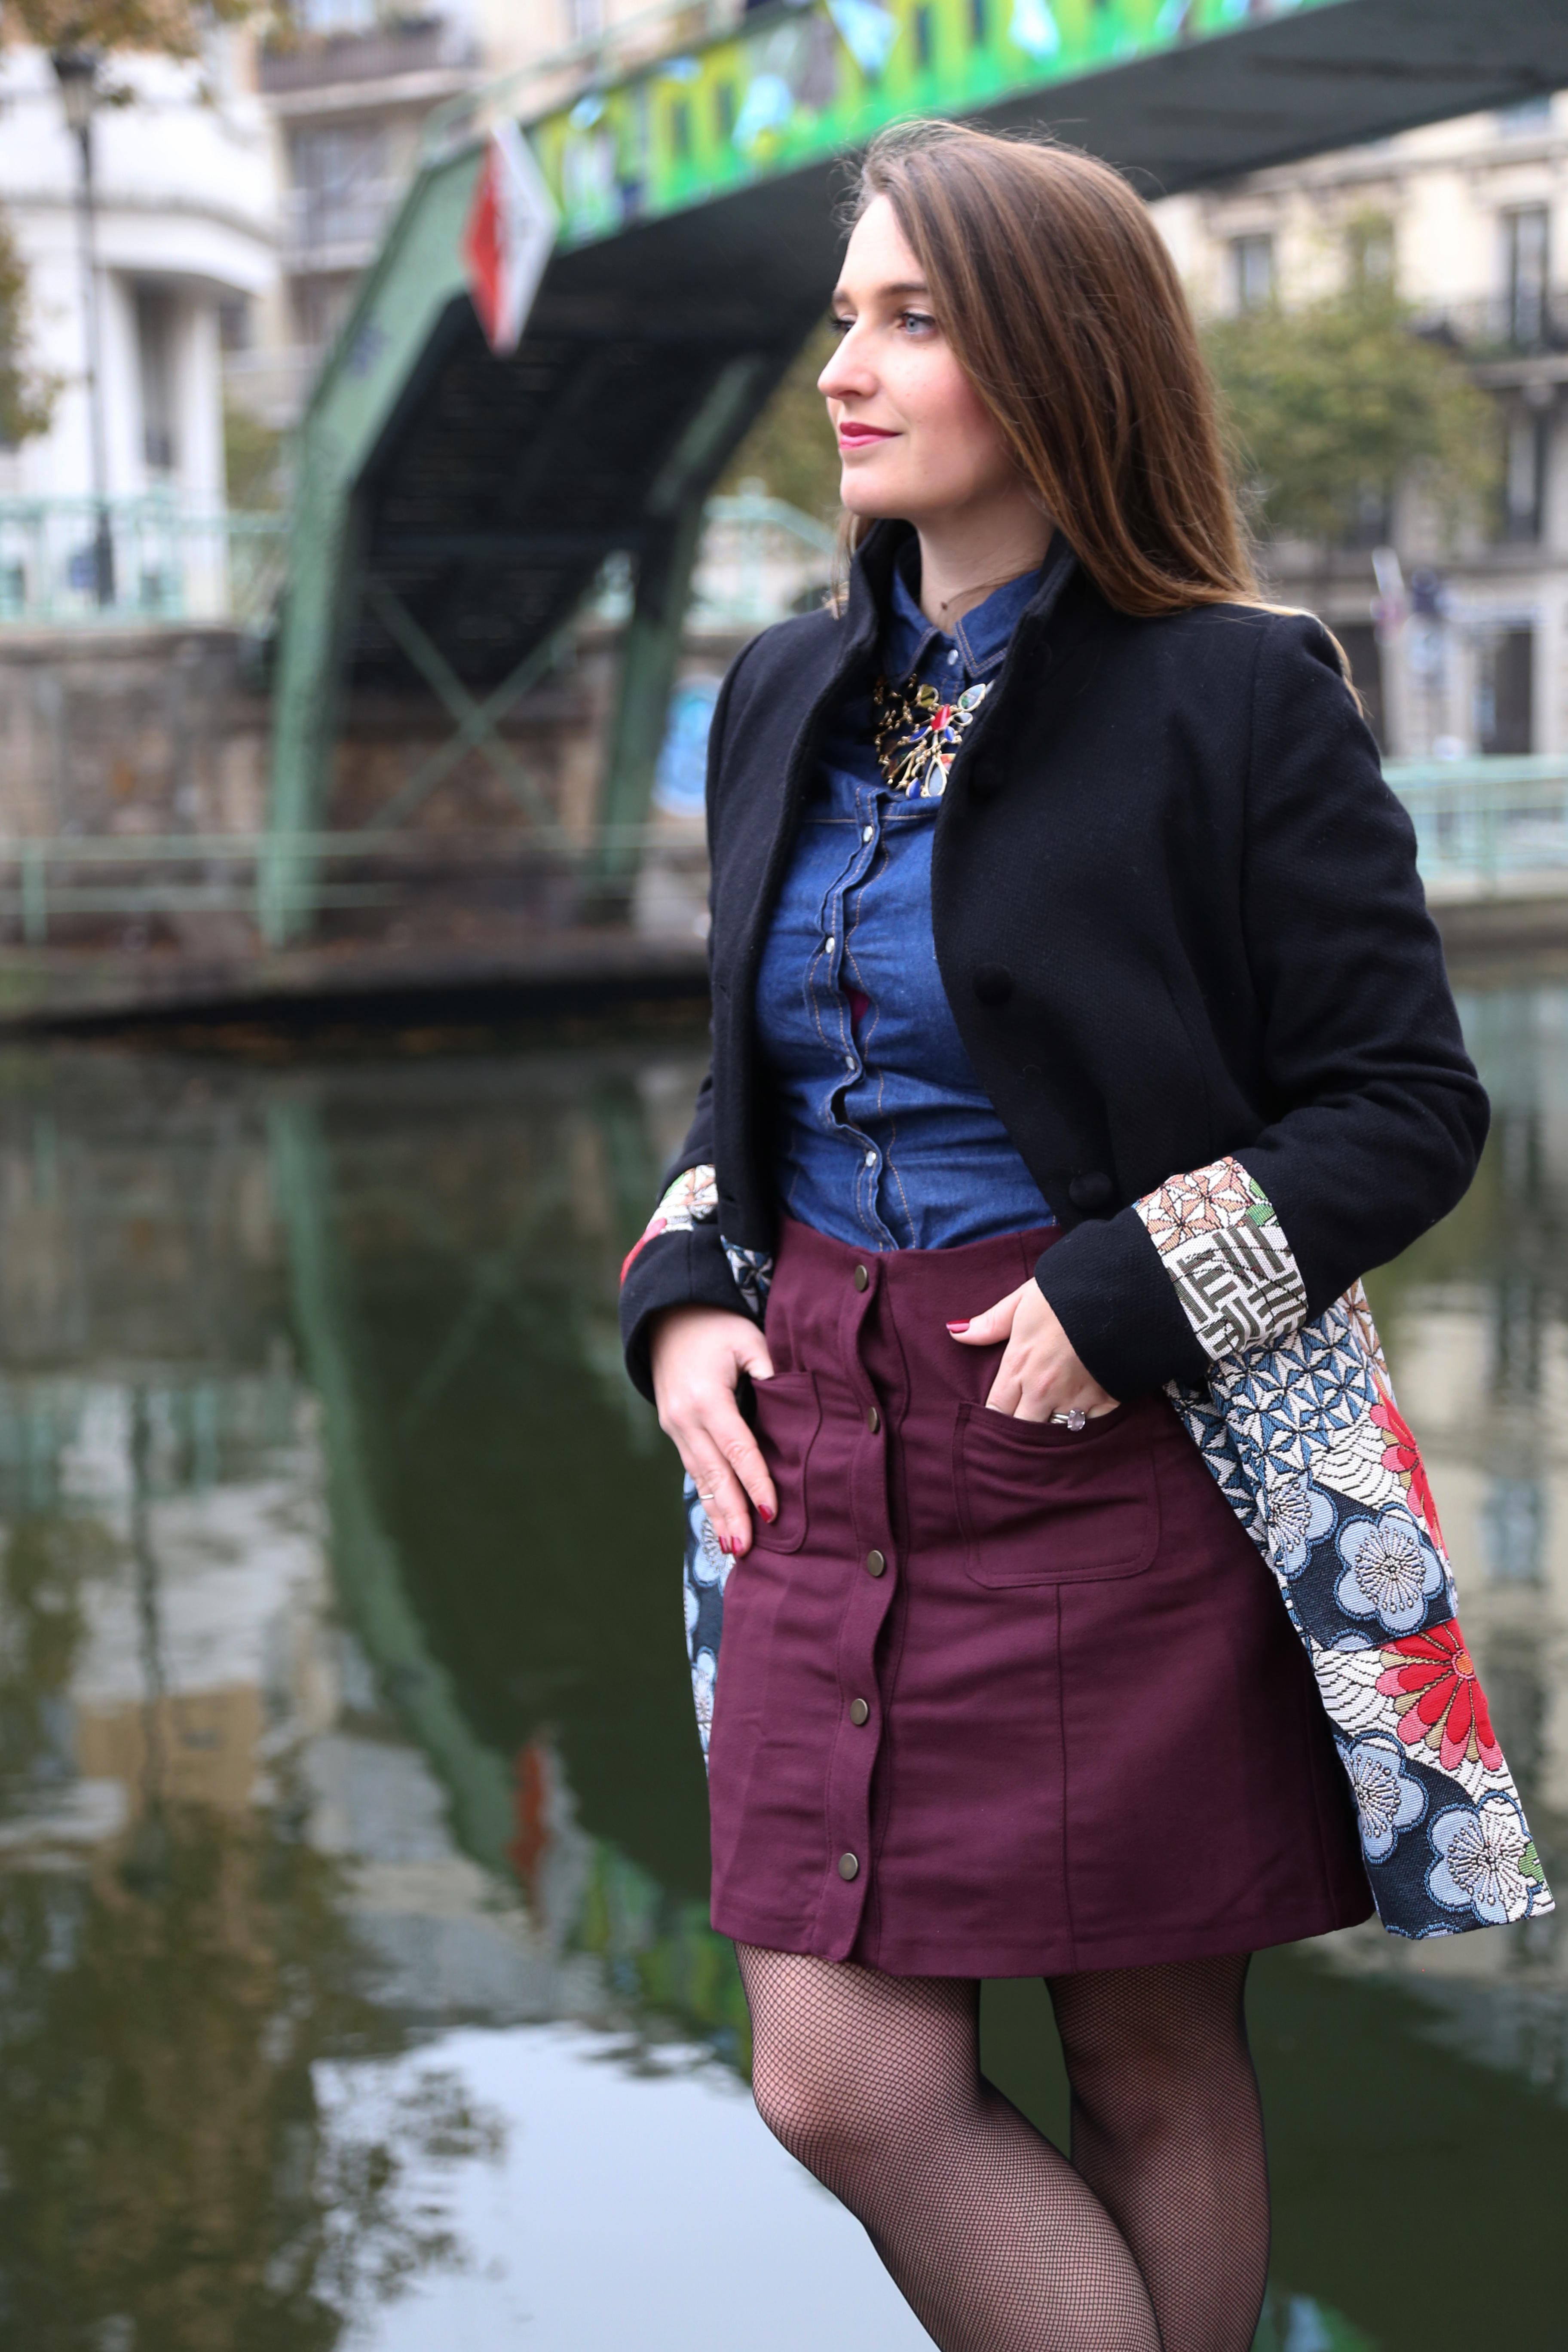 manteau-mi-long-bi-matiere-mydesigual-tricot-vibes-seralynepointcom-influencer-fashion-img_7699